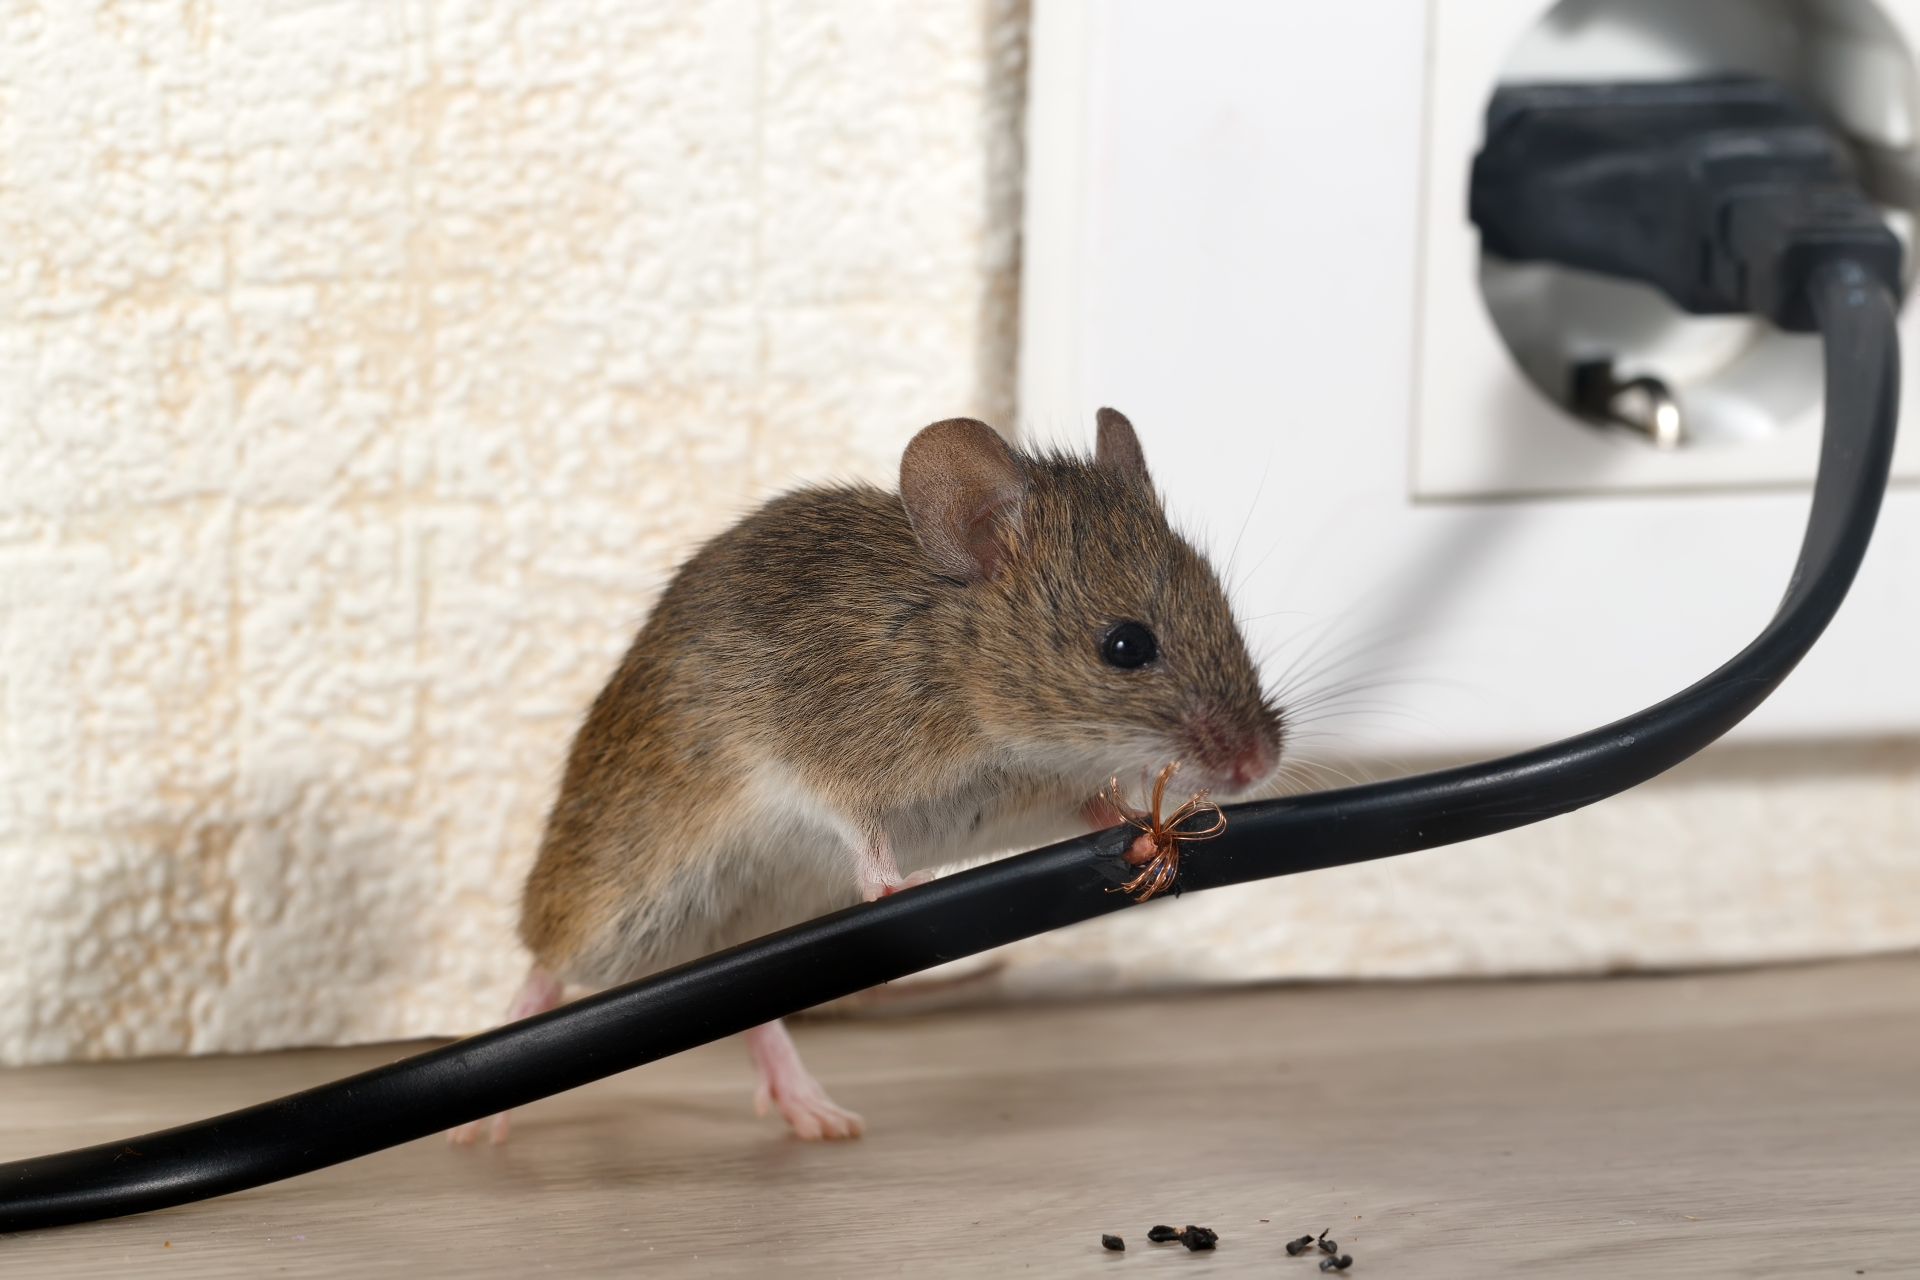 Mice Infestation, Pest Control in Beddington, SM6. Call Now 020 8166 9746